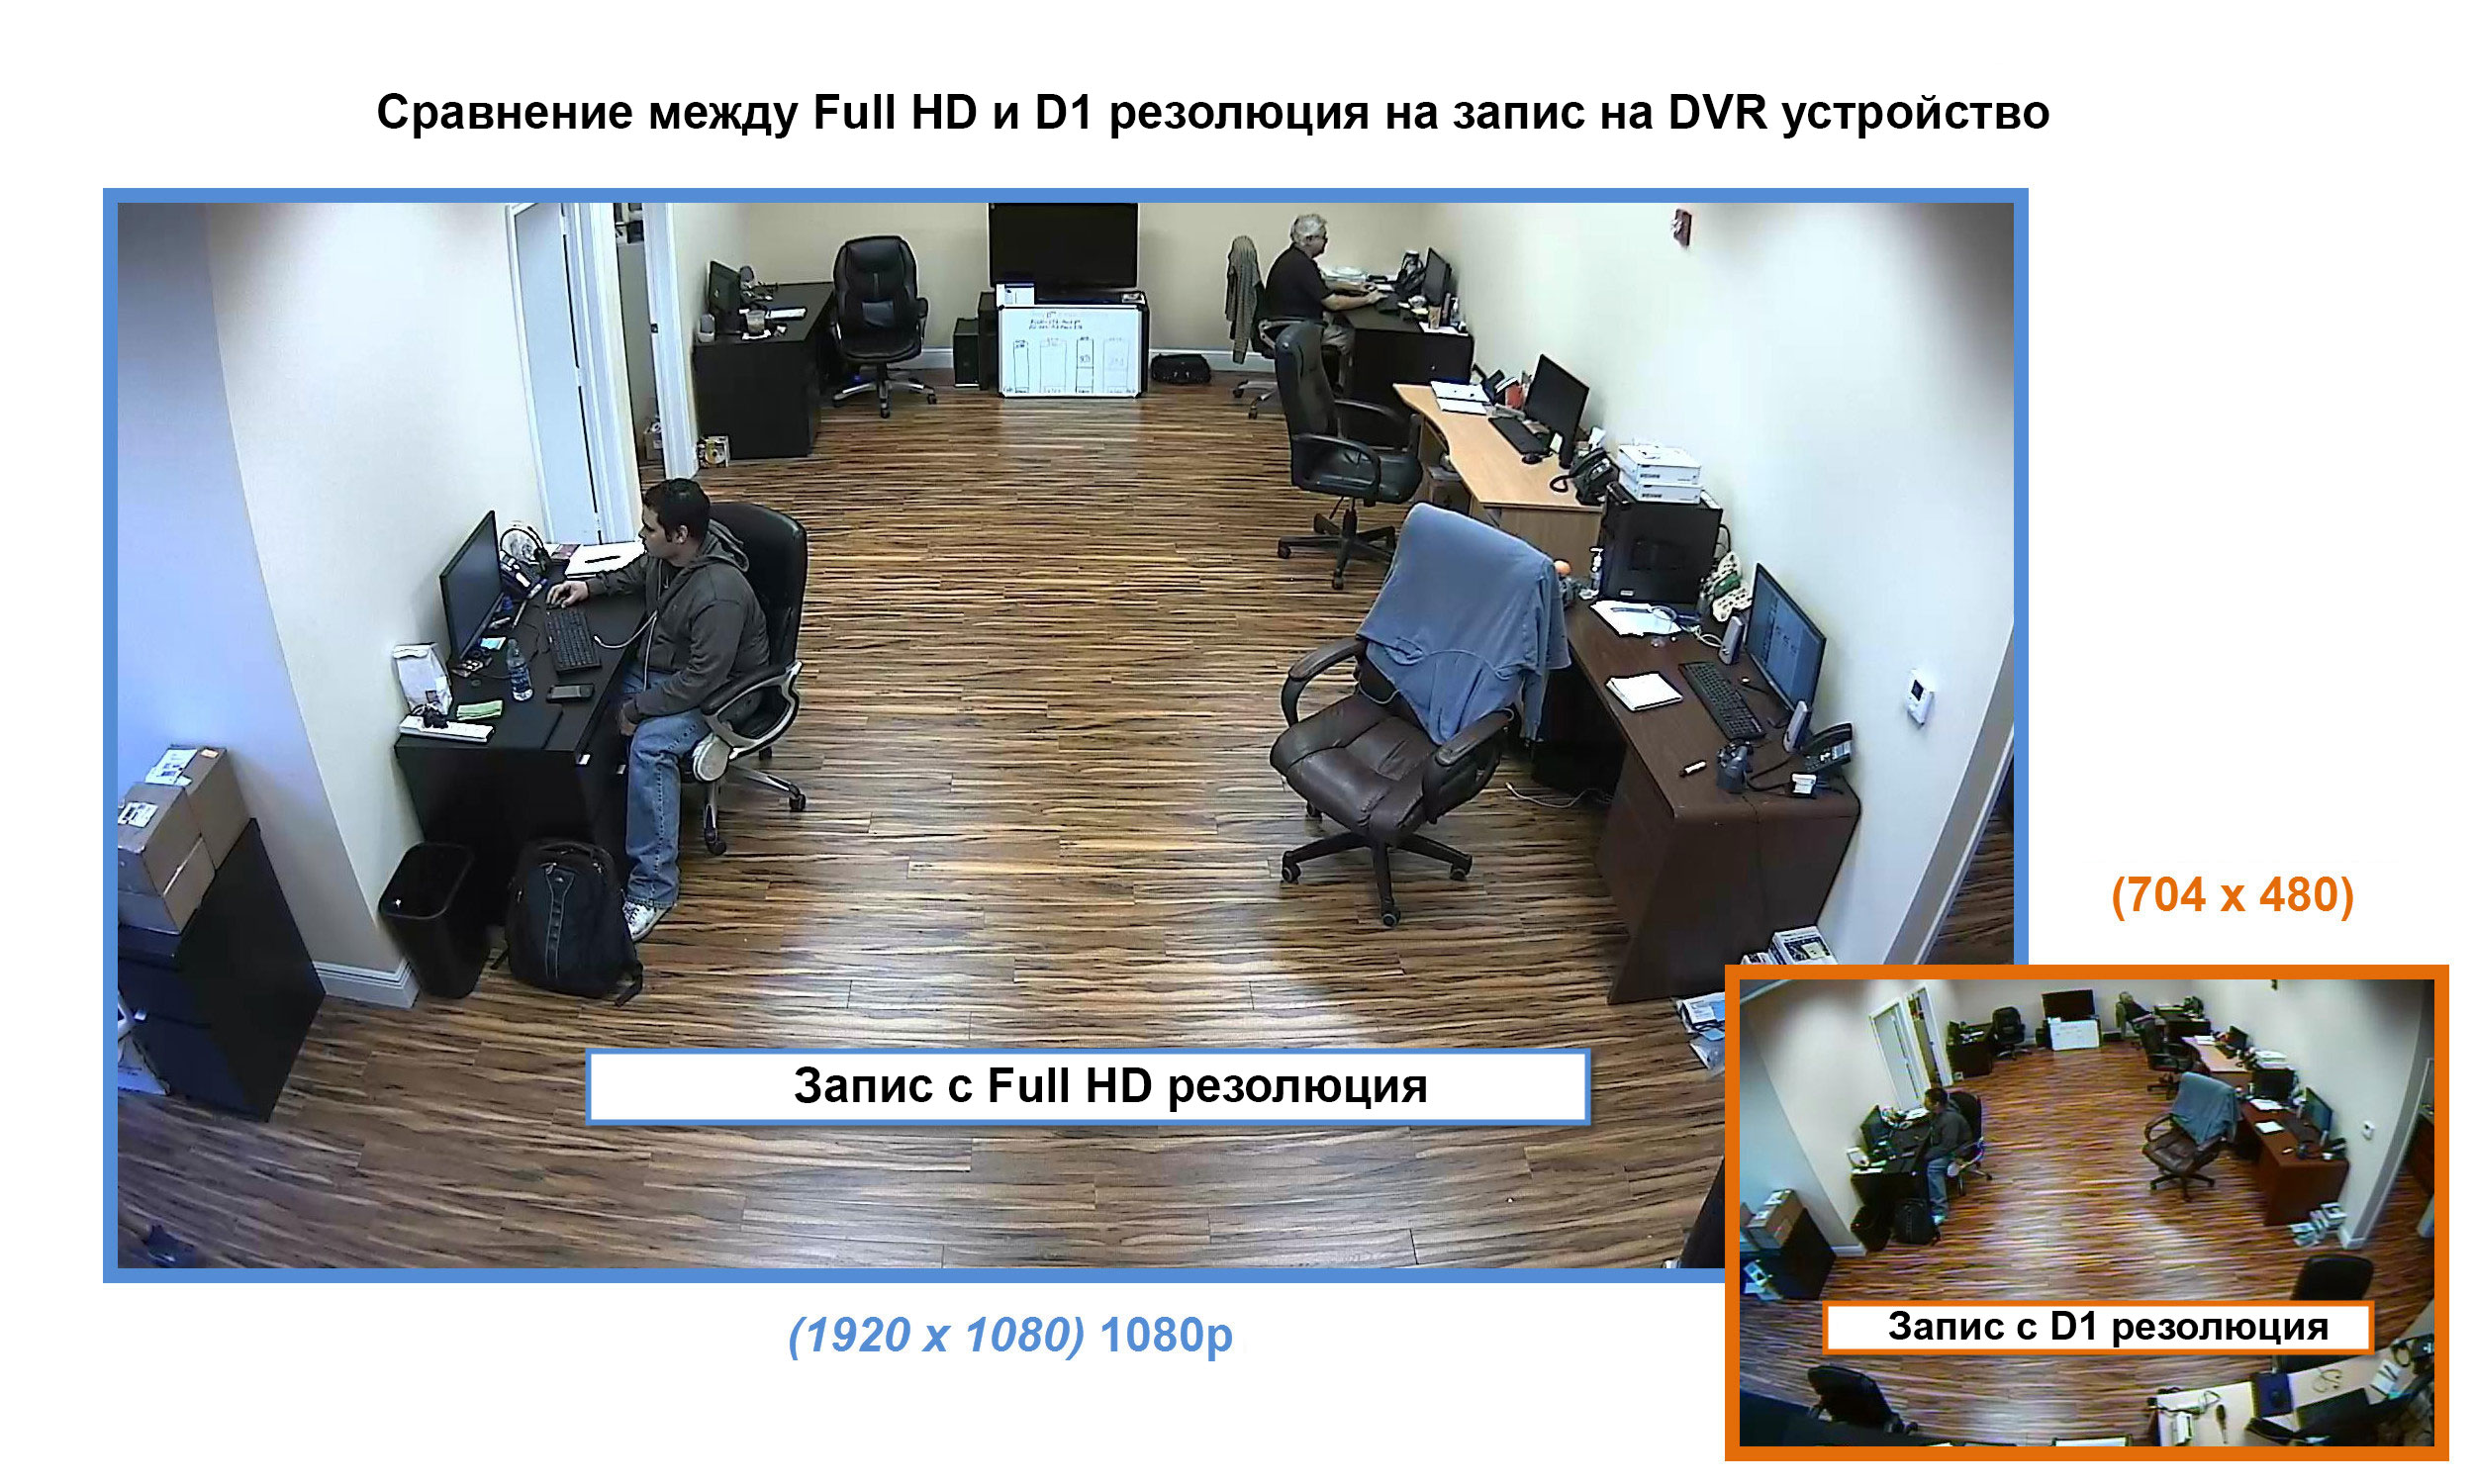 HD-TVI-1080p-vs-CCTV-Camera-D1-Resolution